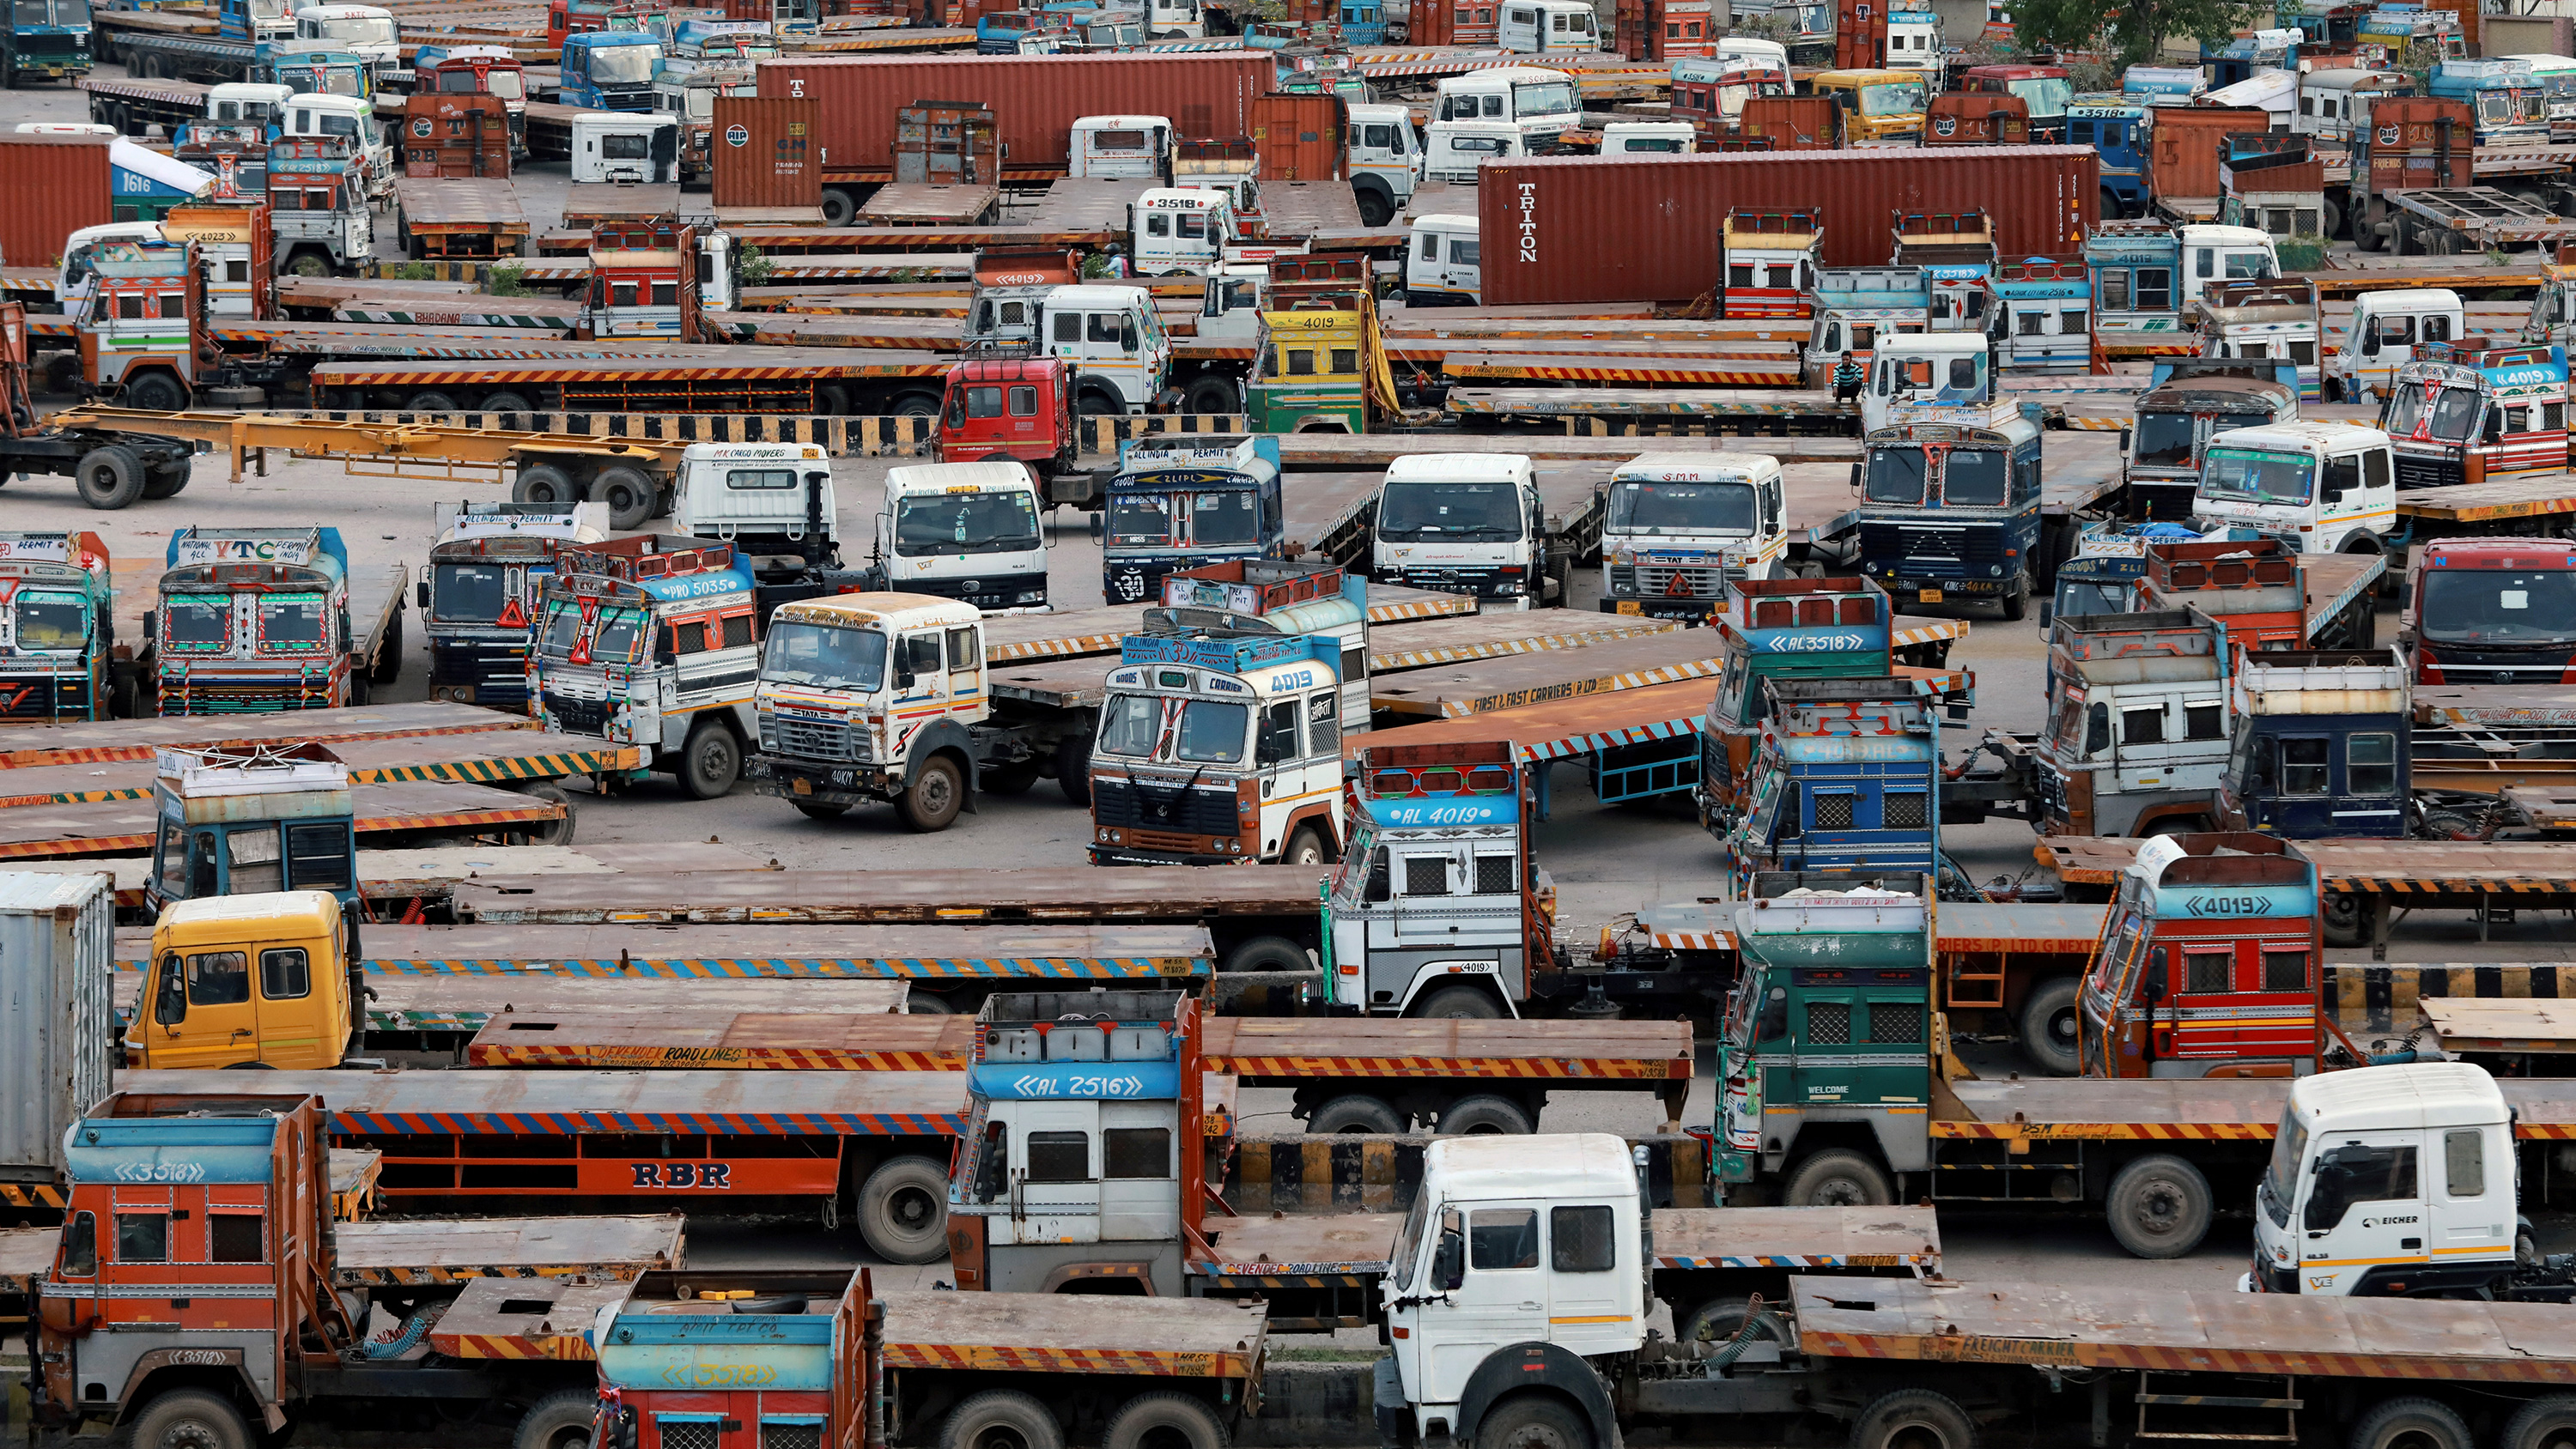 The photo shows a huge collection of large haul trucks packed together in a large parking area.